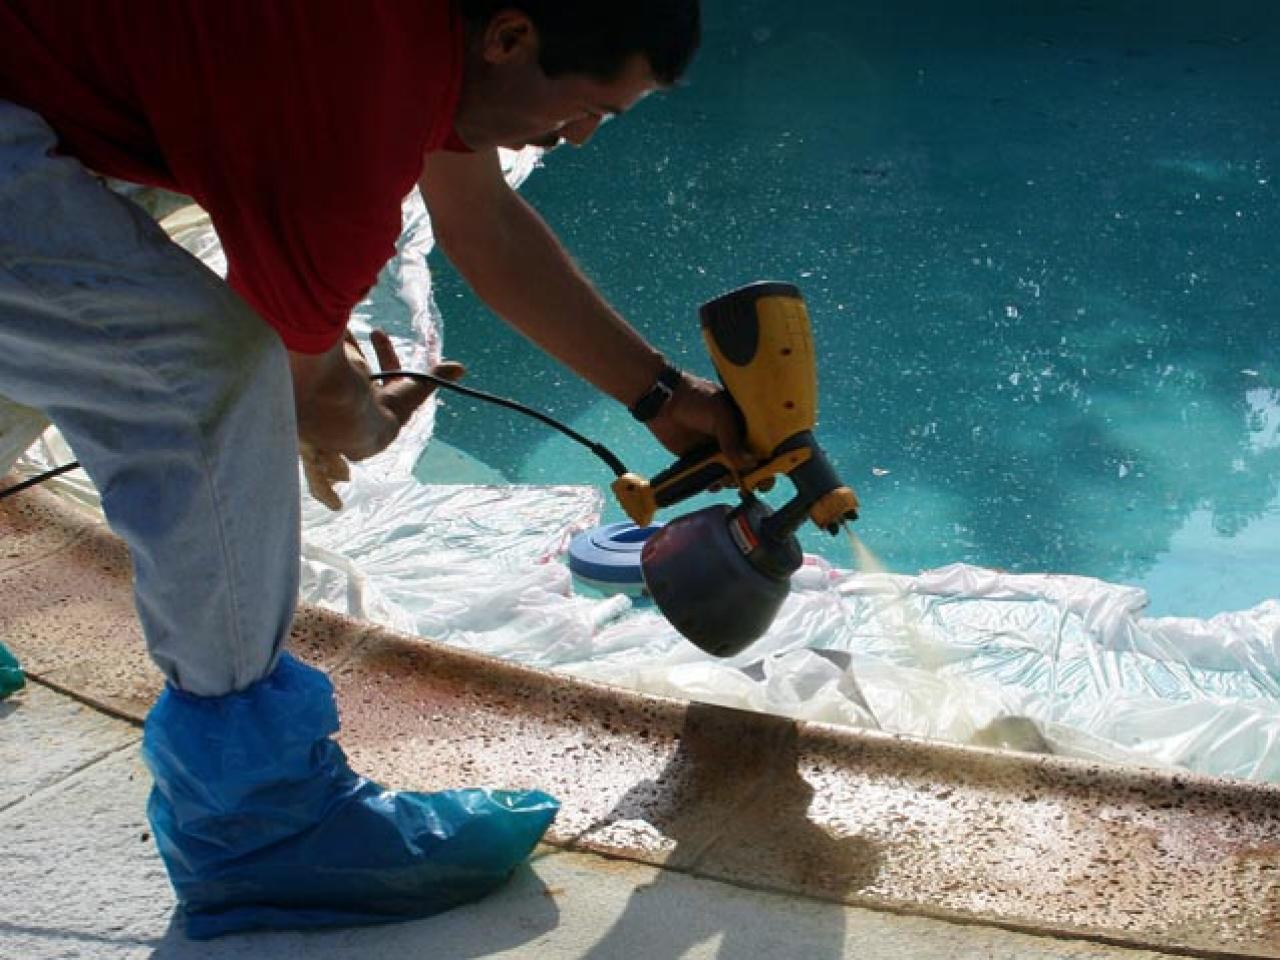 How to resurface a pool patio how tos diy for Painting aluminum swimming pool coping